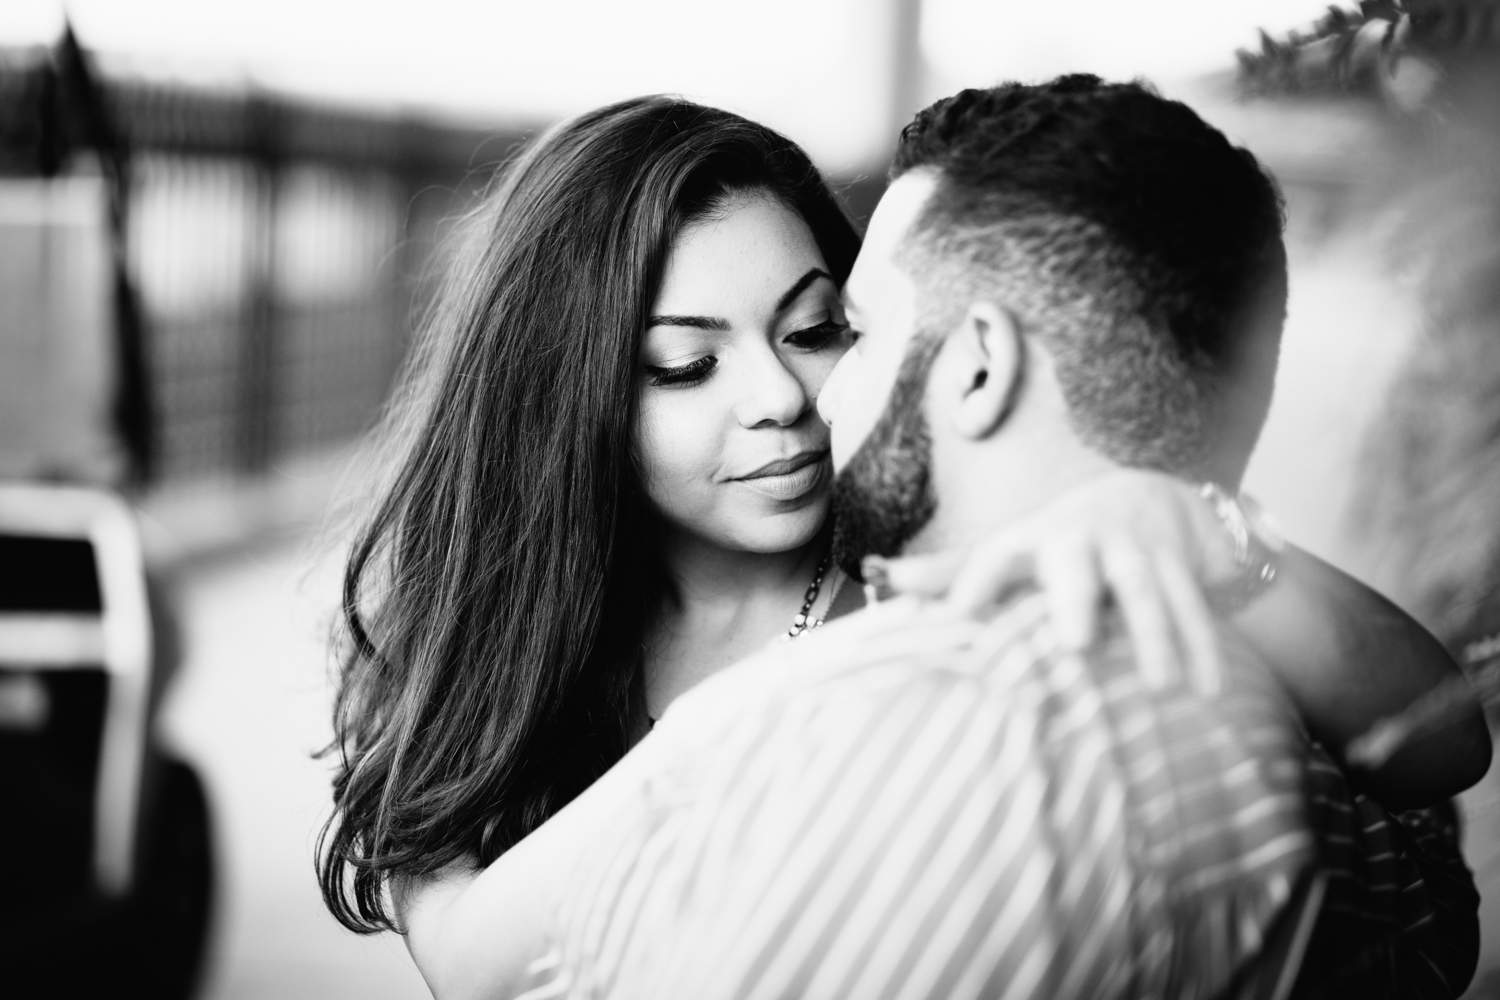 Ashley-reed-photography-pittsburgh-engagement-engagementphotography-engagementphotographer-stationsquare-statio-square-pittsburghengagementphotography-37.jpg